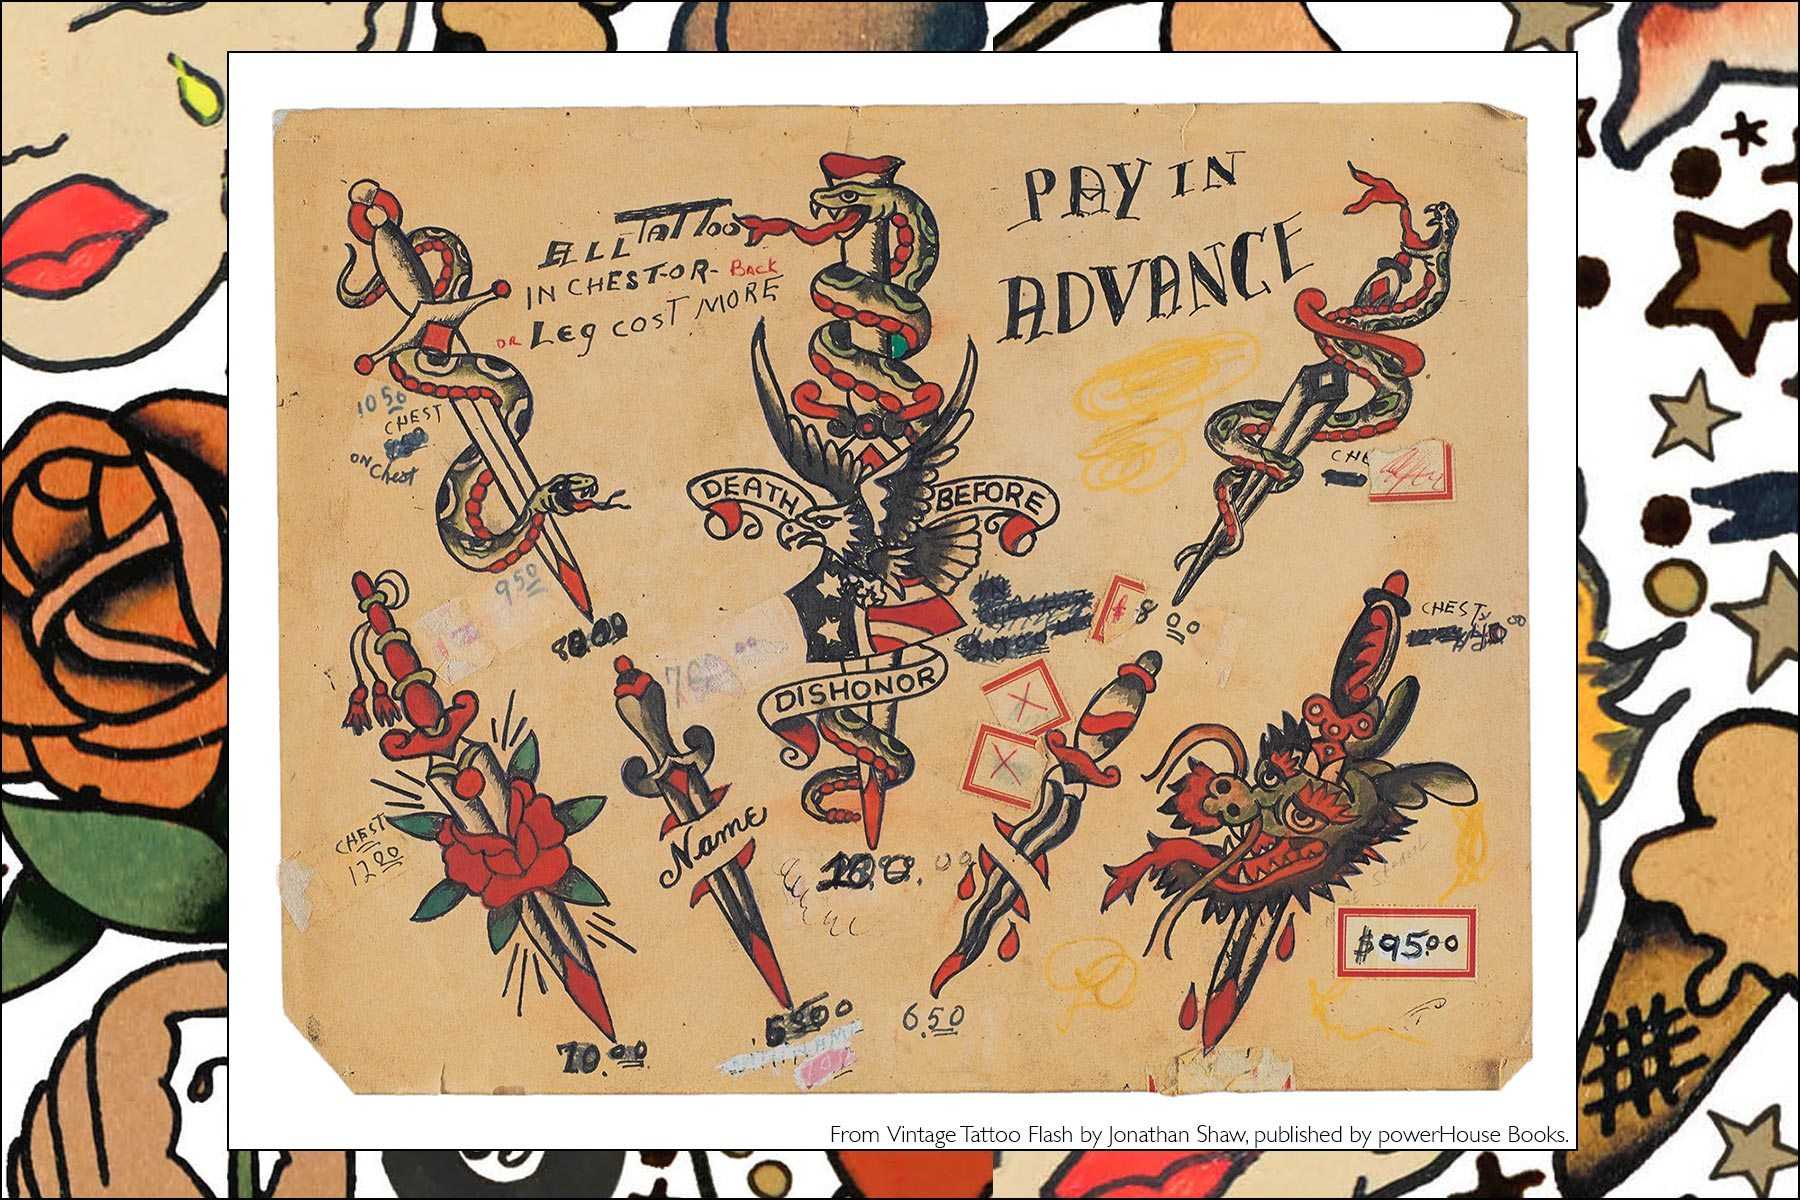 Tattoo flash from the newly released publication by Powerhouse Books, Vintage Tattoo Flash by Jonathan Shaw. Ponyboy magazine NY.